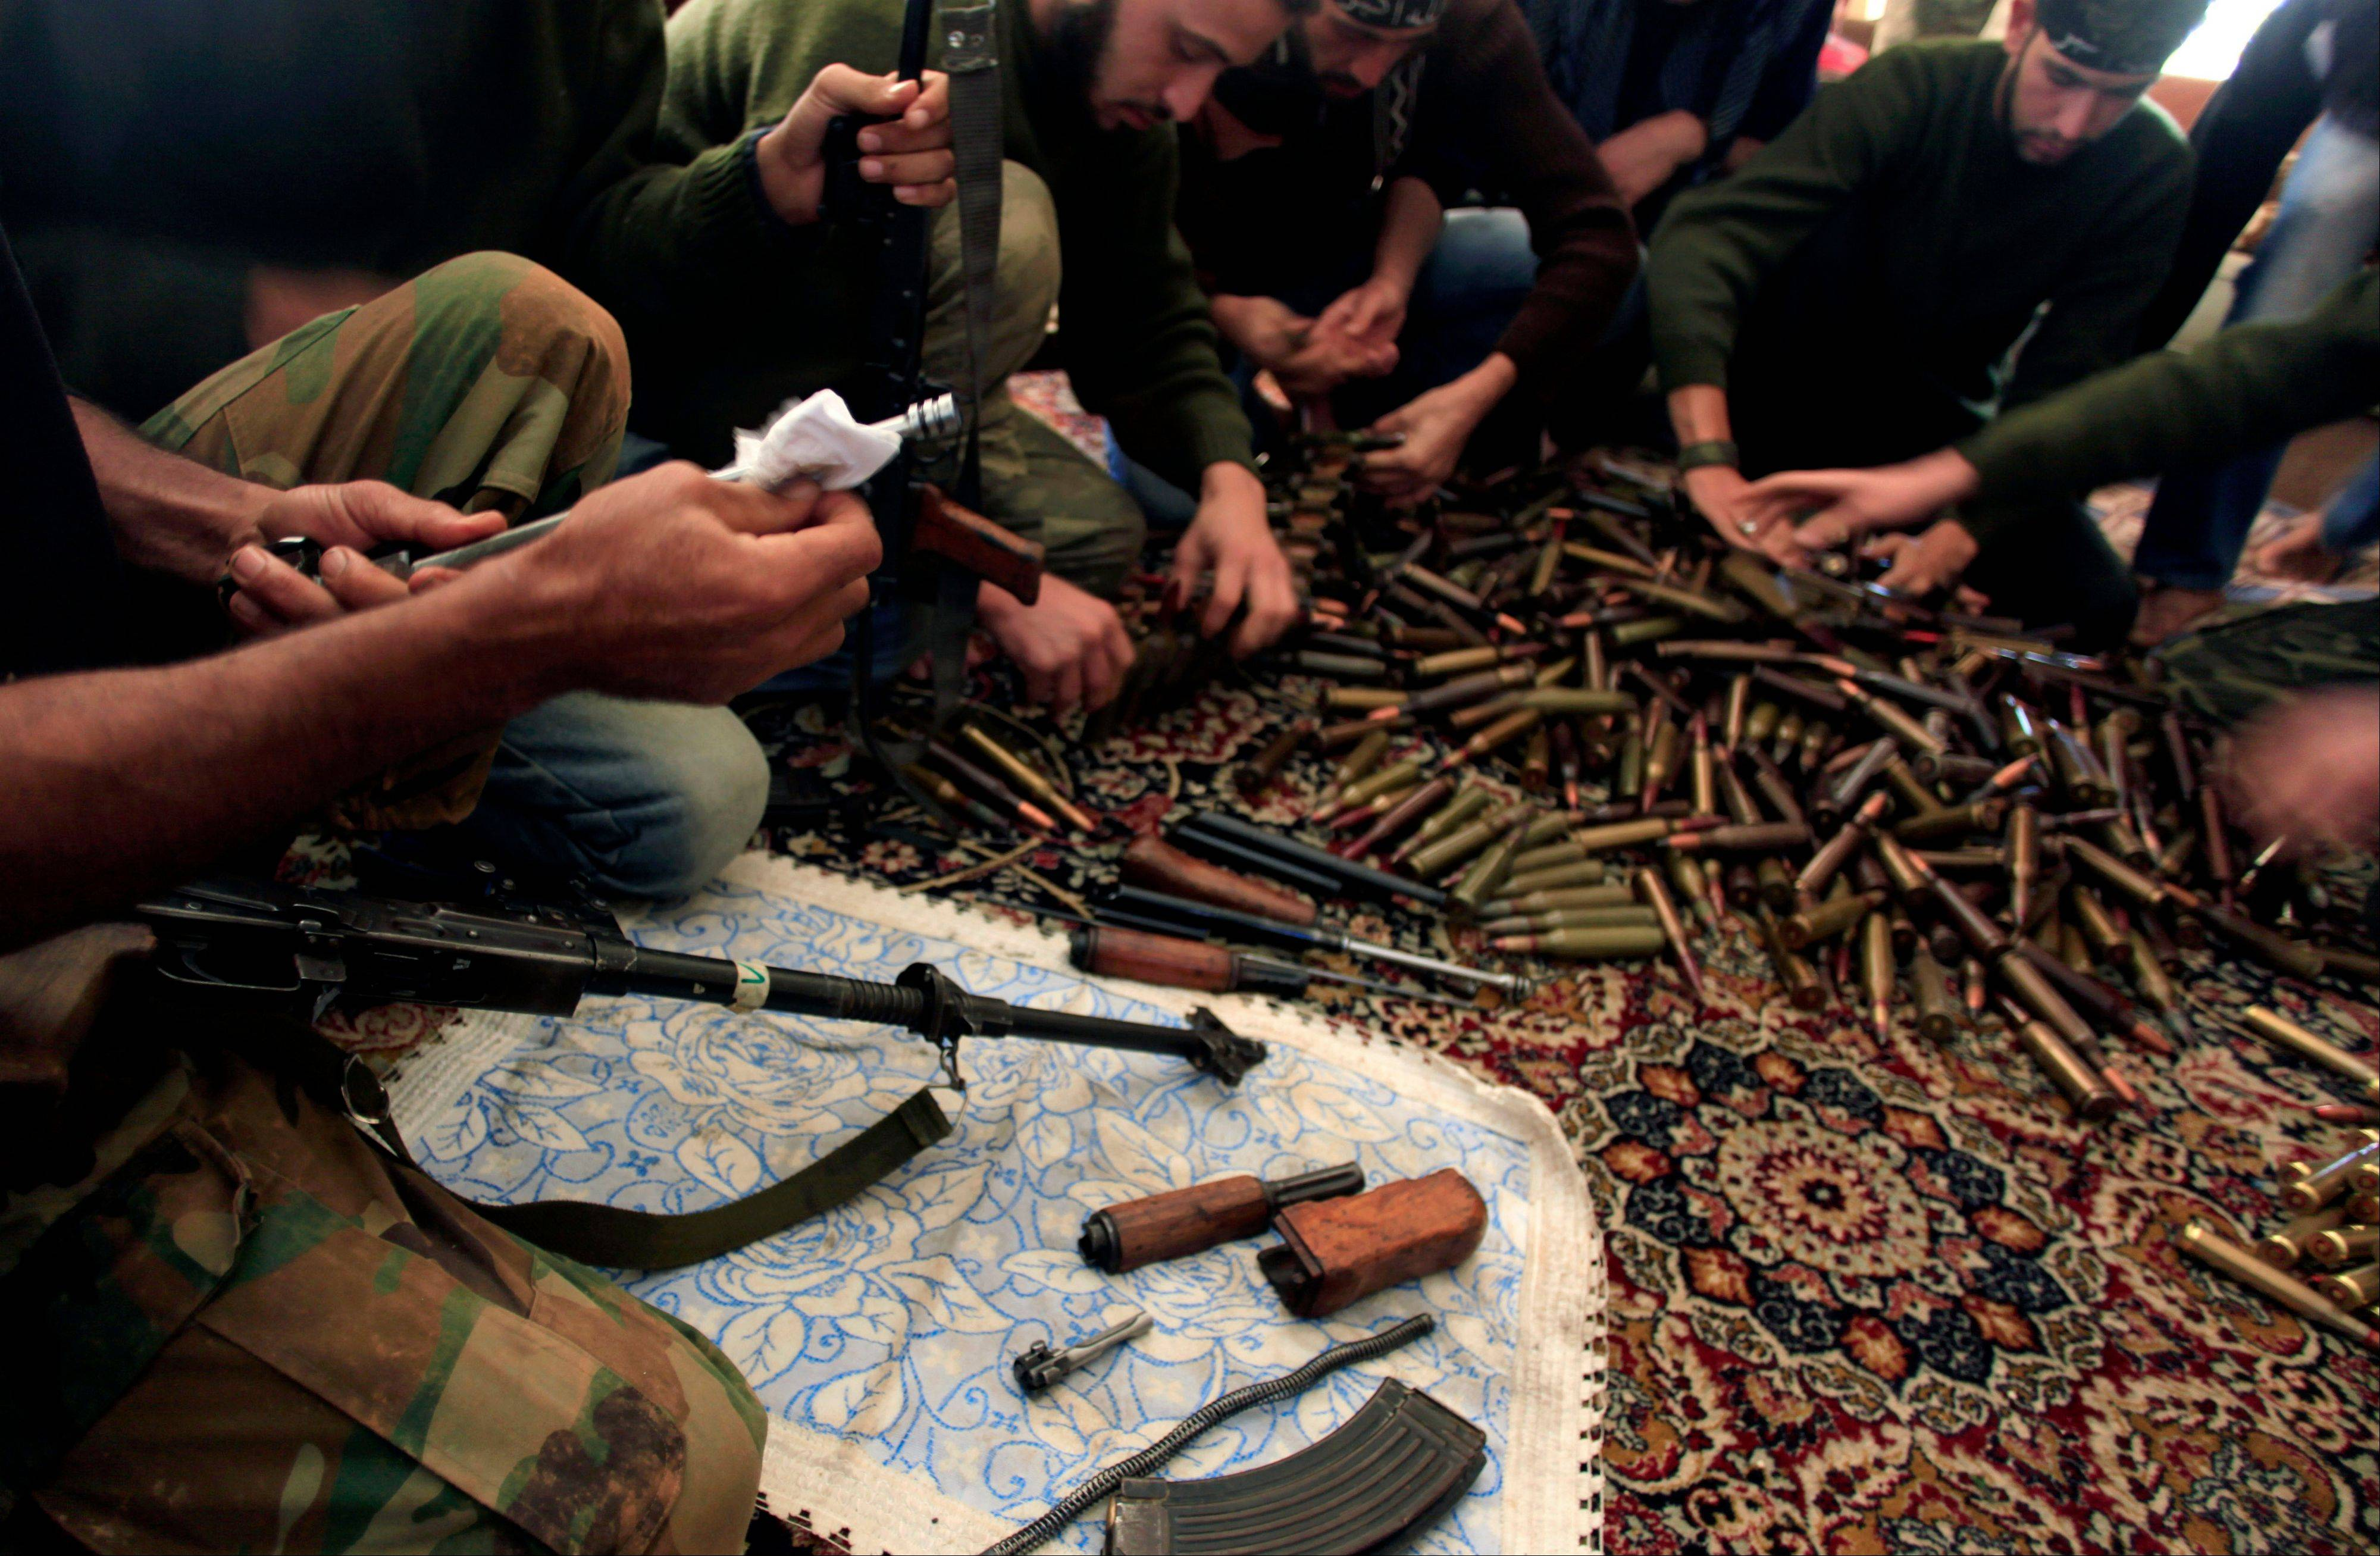 Free Syrian Army fighters clean their weapons and check ammunition at their base on the outskirts of Aleppo, Syria. The crisis over chemical weapons in Syria has underlined a central dilemma for the West as it tries to deal with the country�s civil war: the lack of attractive alternatives to President Bashar Assad.